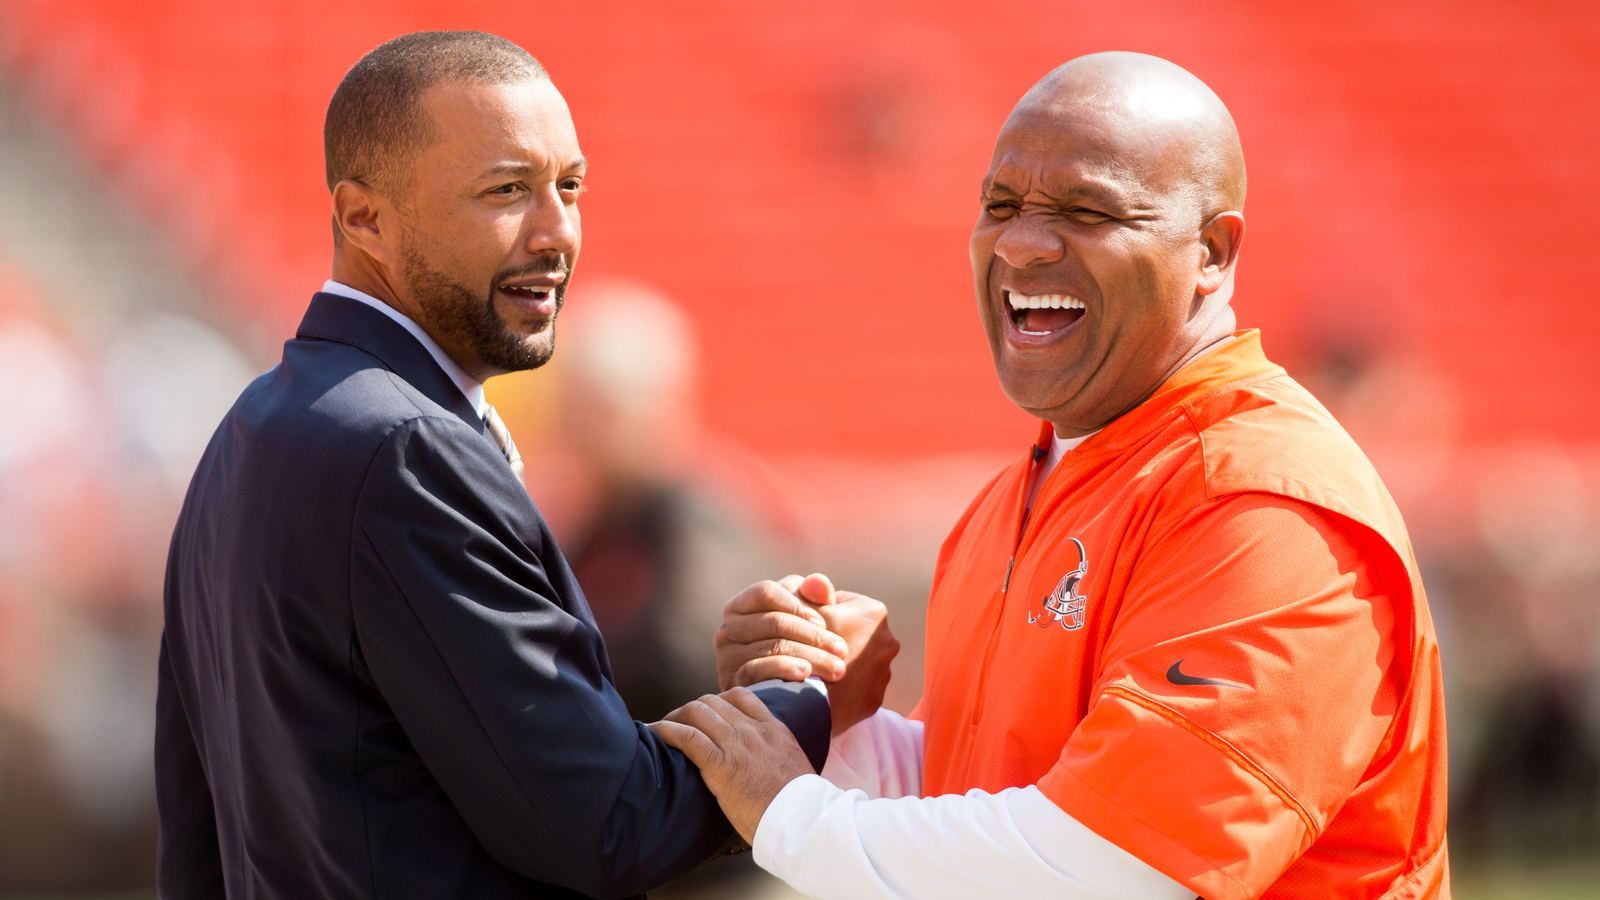 Former Browns VP Sashi Brown releases interesting statement